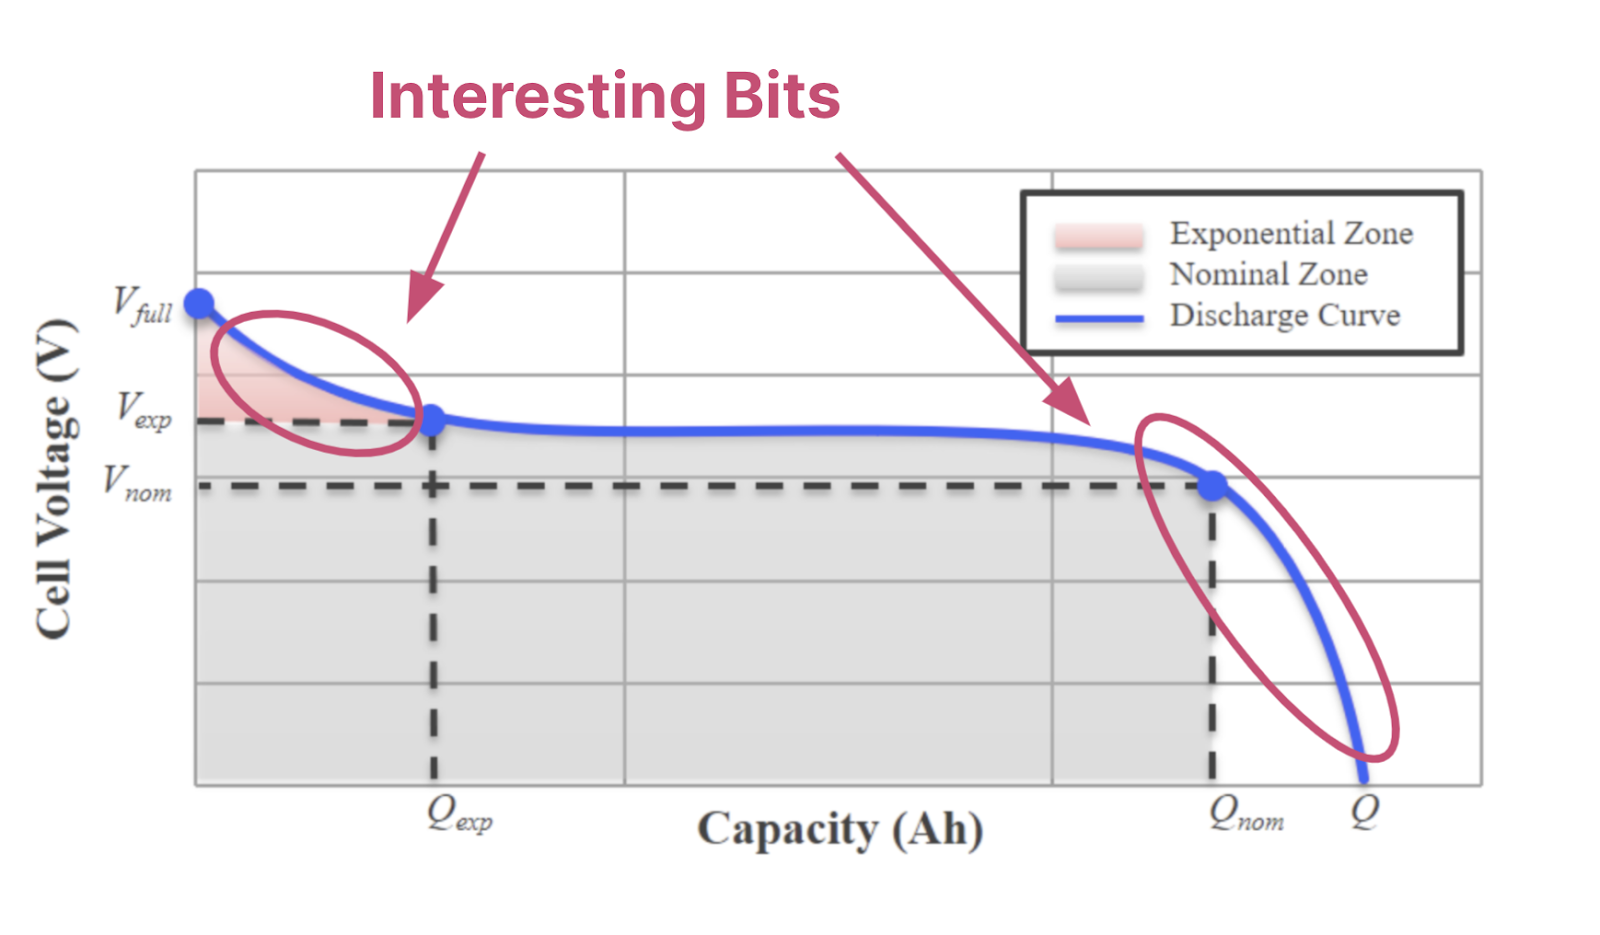 """The same battery discharge curve as in the previous image but with the """"interesting bits"""" circled, namely where the voltage decreases rapidly at the beginning and the end of the discharge curve."""